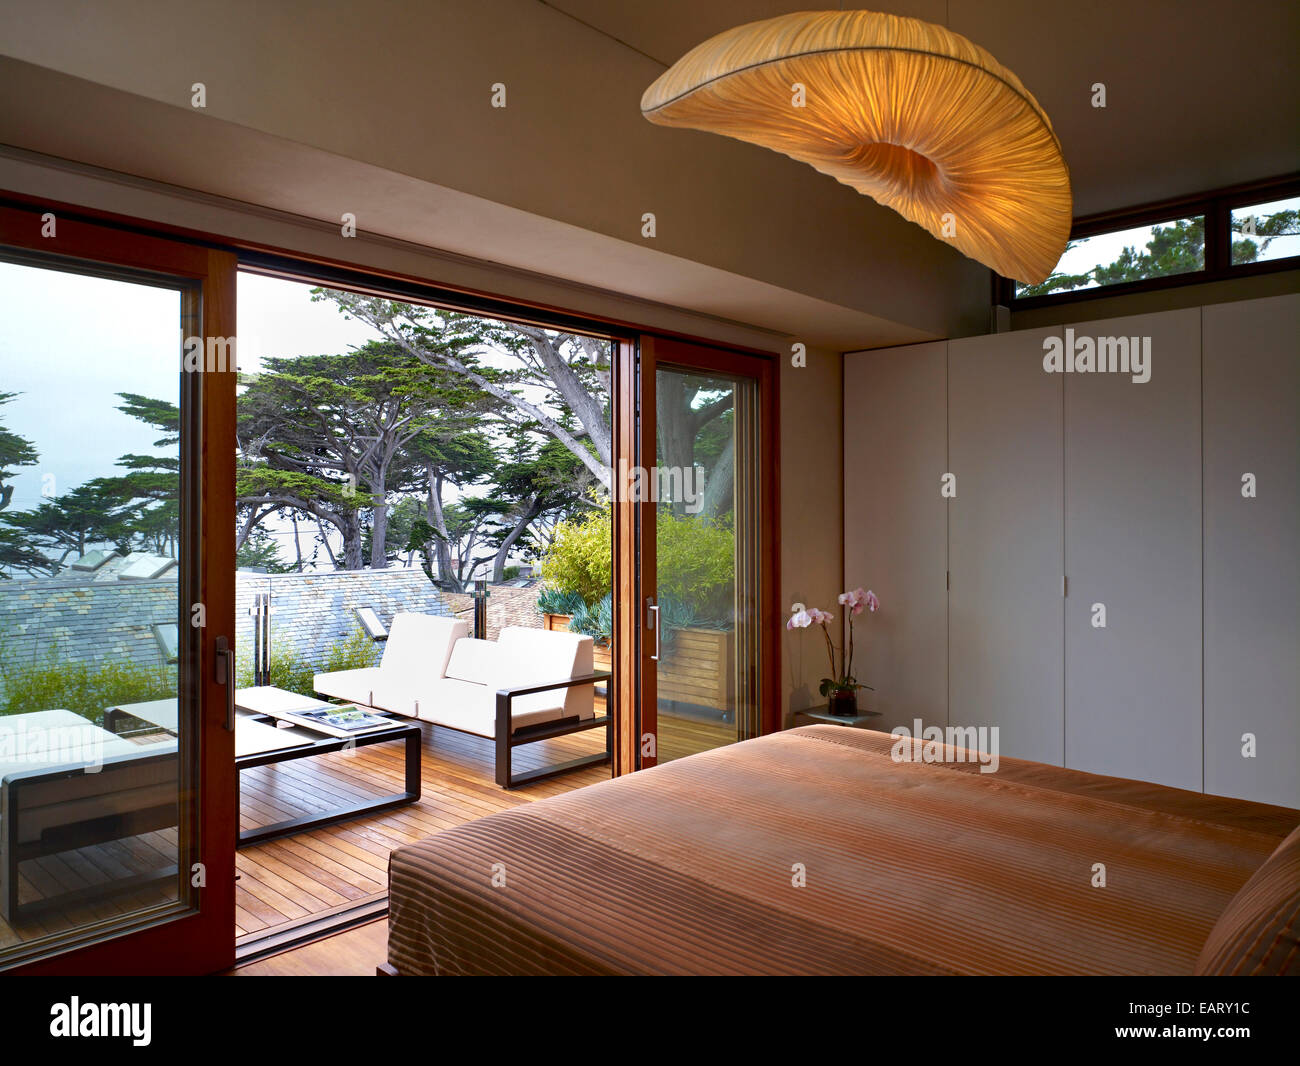 Pendant Light Above Double Bed In Bedroom With View To Balcony Stock